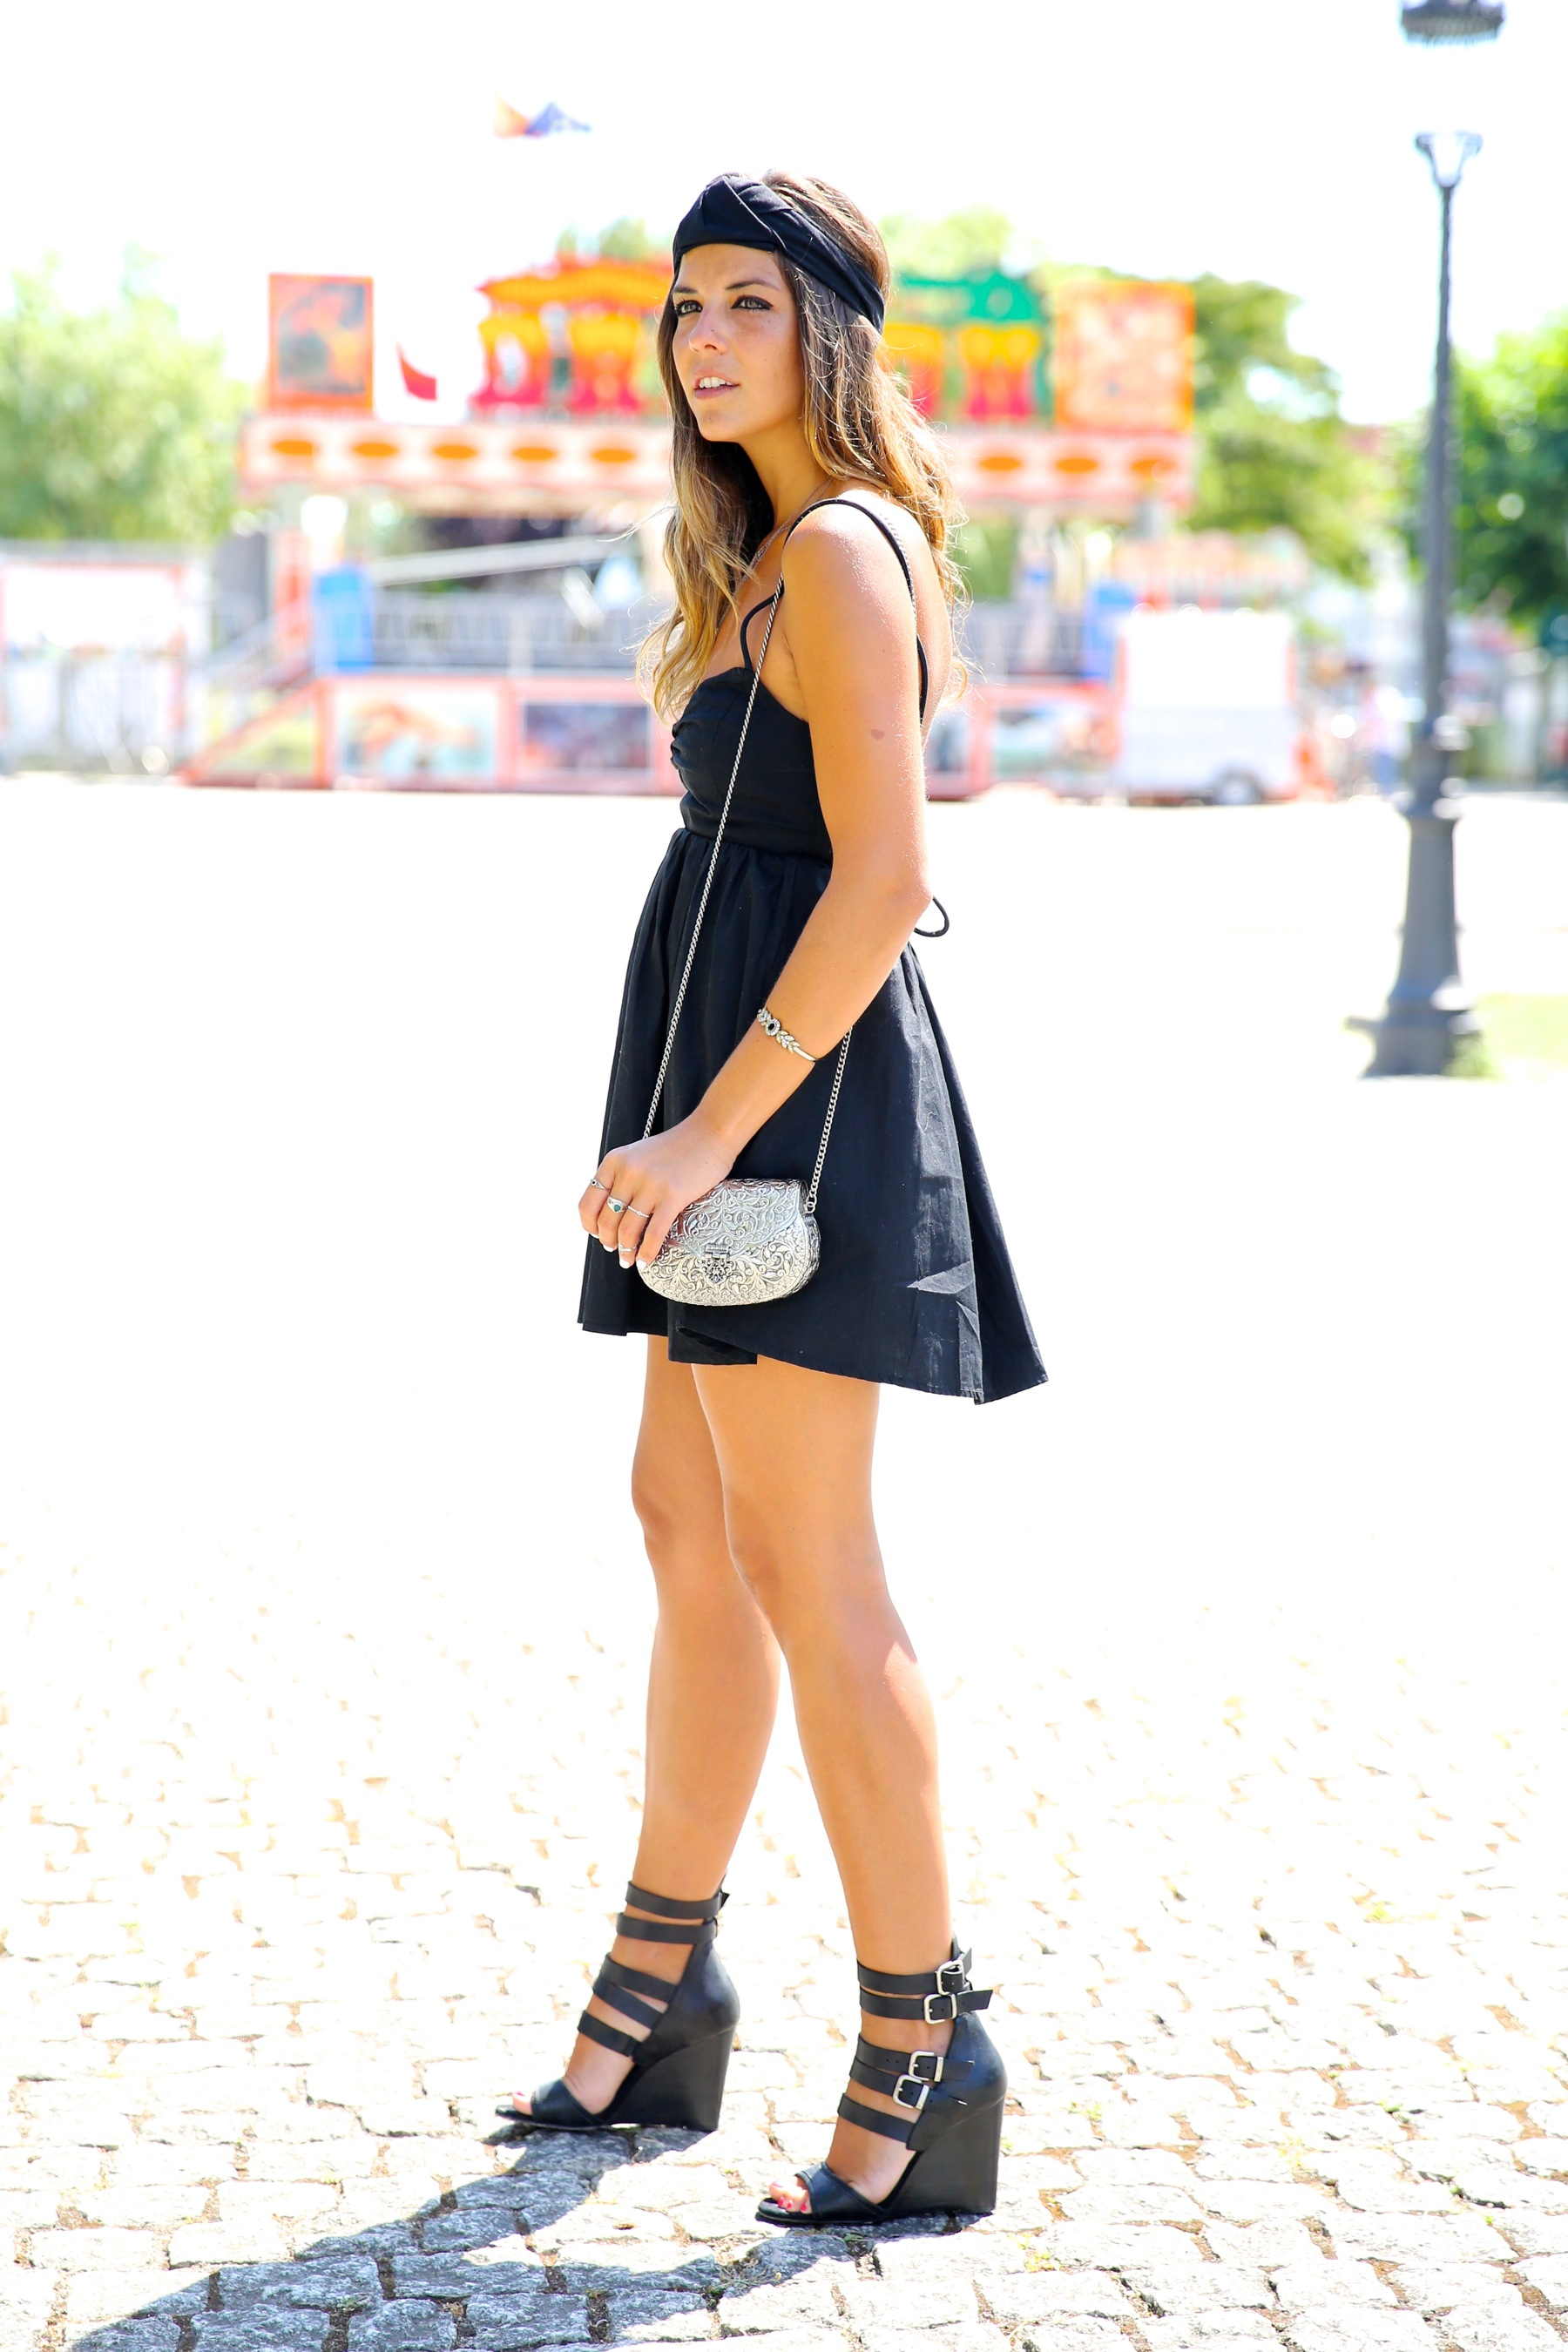 trendy_taste-look-outfit-street_style-blog-blogger-fashion_spain-moda_españa-maje-black_dress-vestido_negro-espalda_abierta-sandalias-silver_bag-bolso_plata-o_grove-galicia-turbante-turban-10